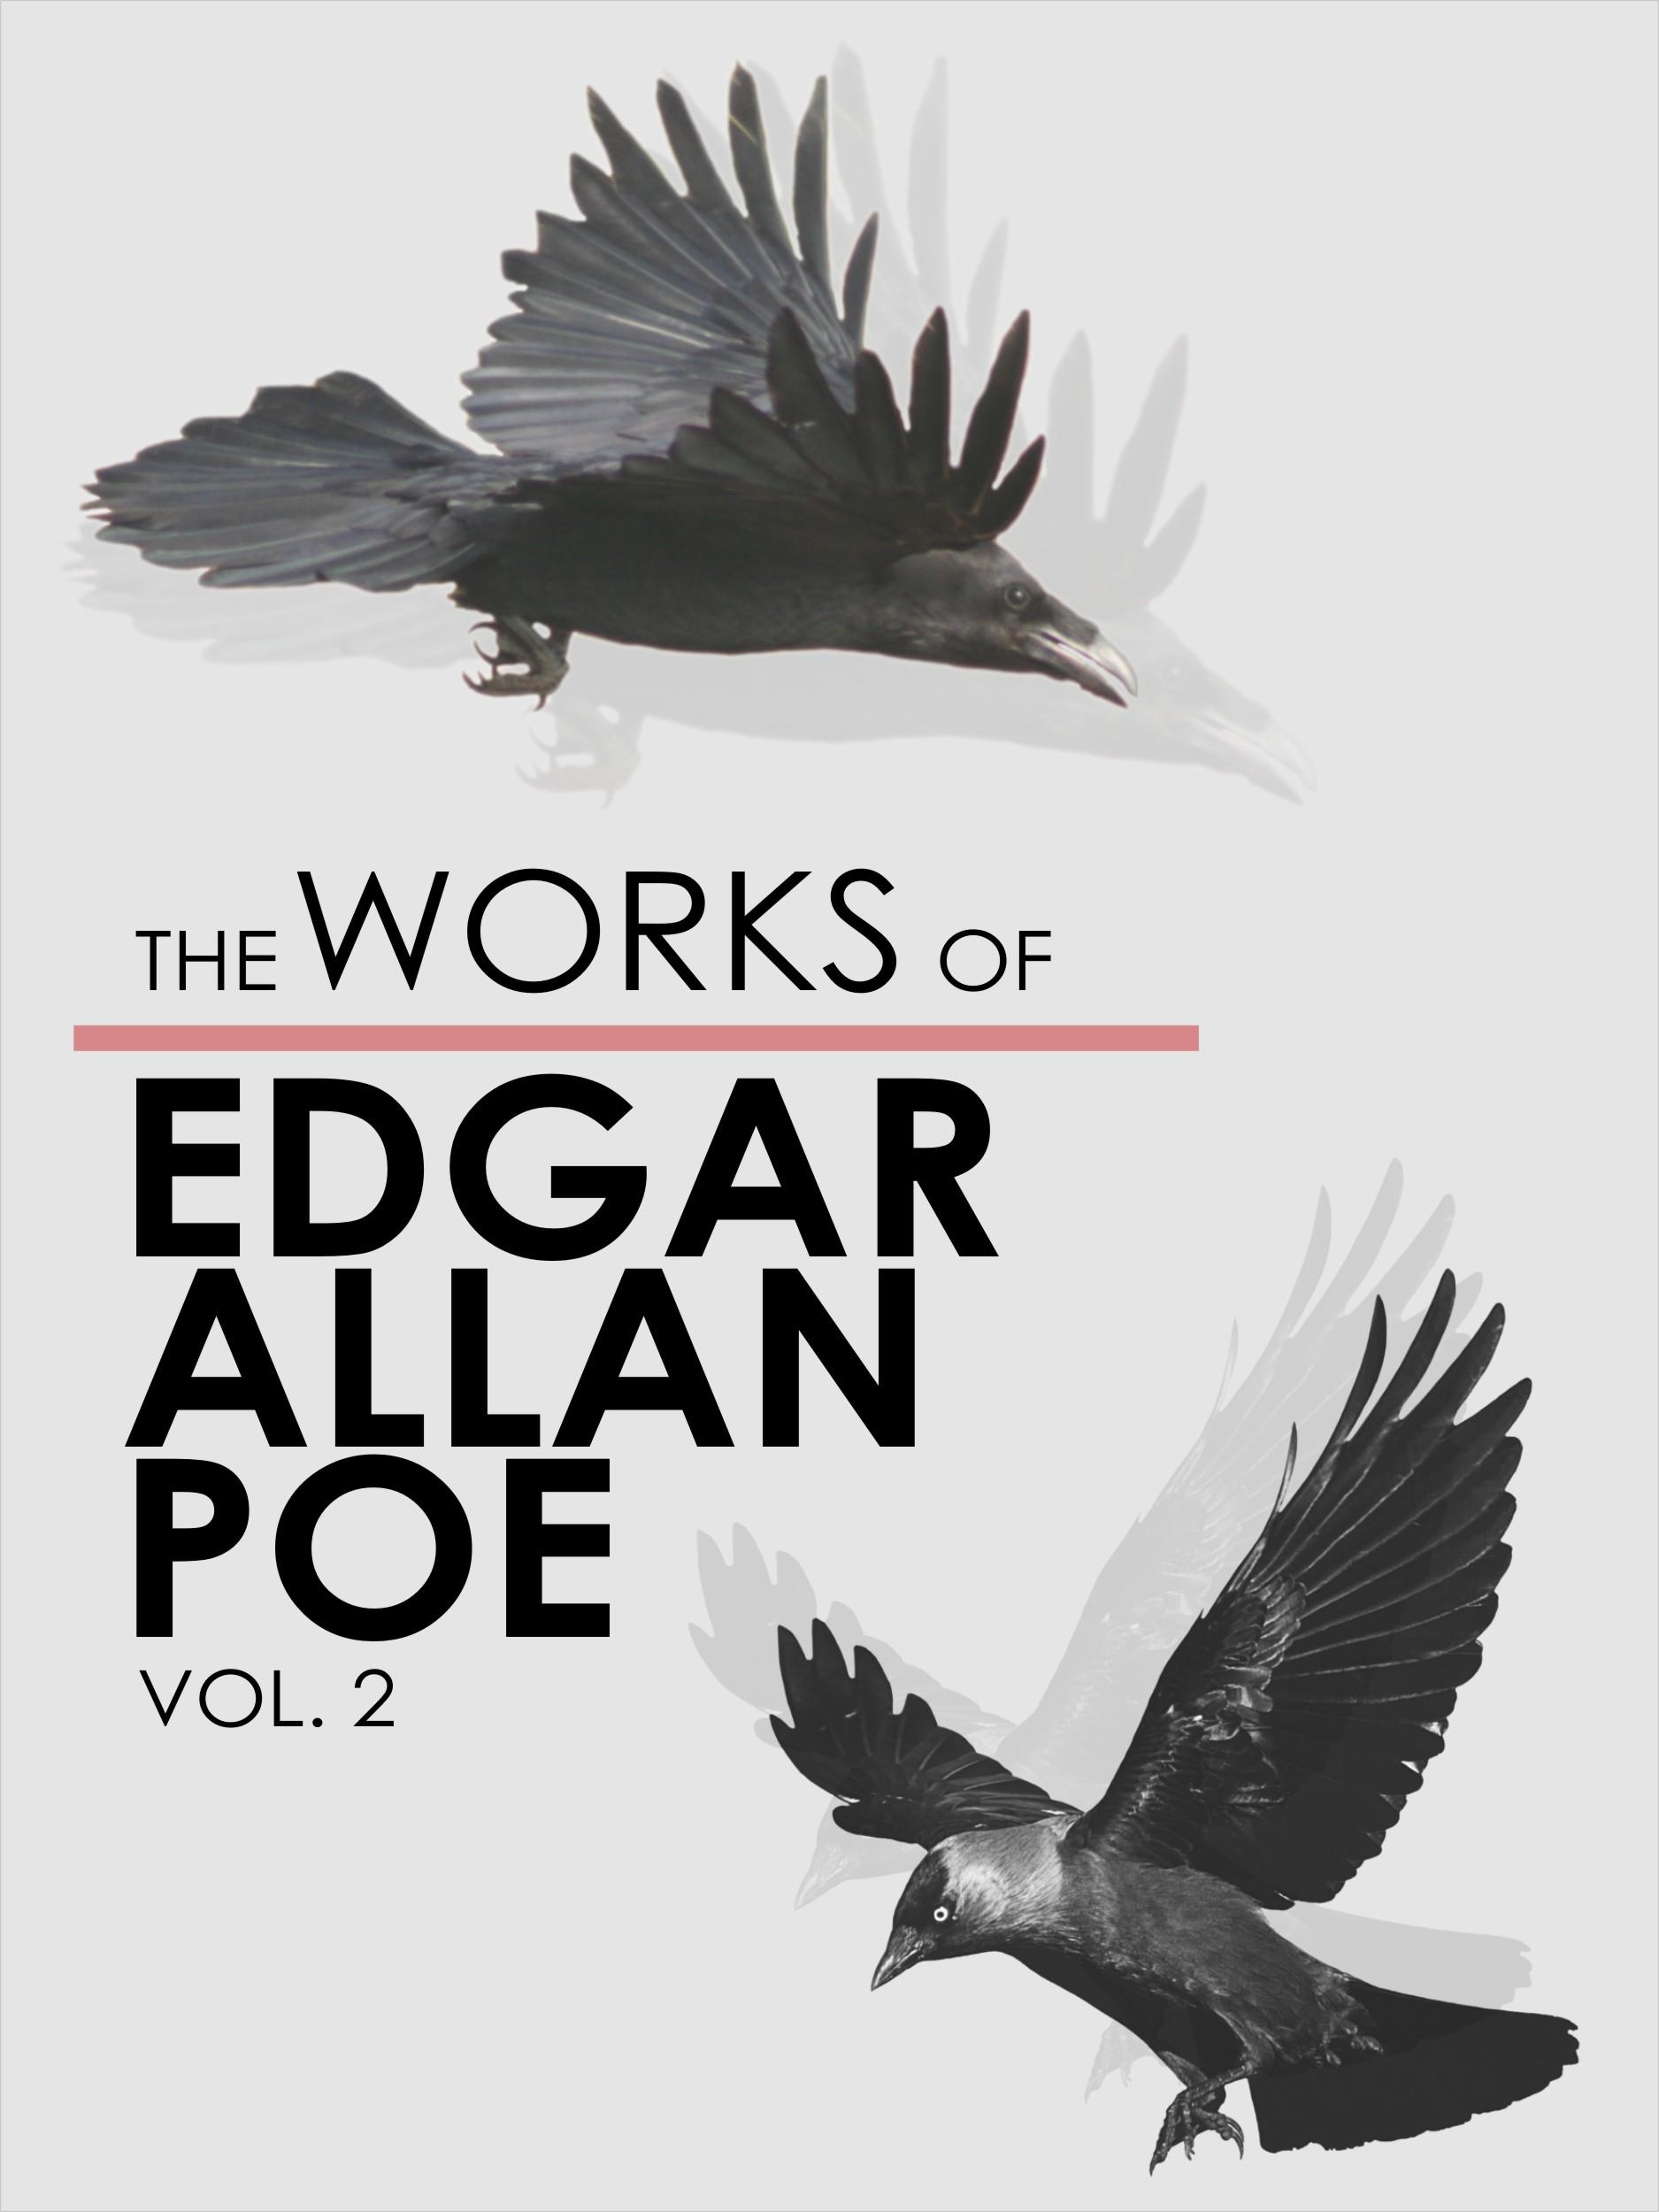 The Works of Edgar Allan Poe - Volume 2